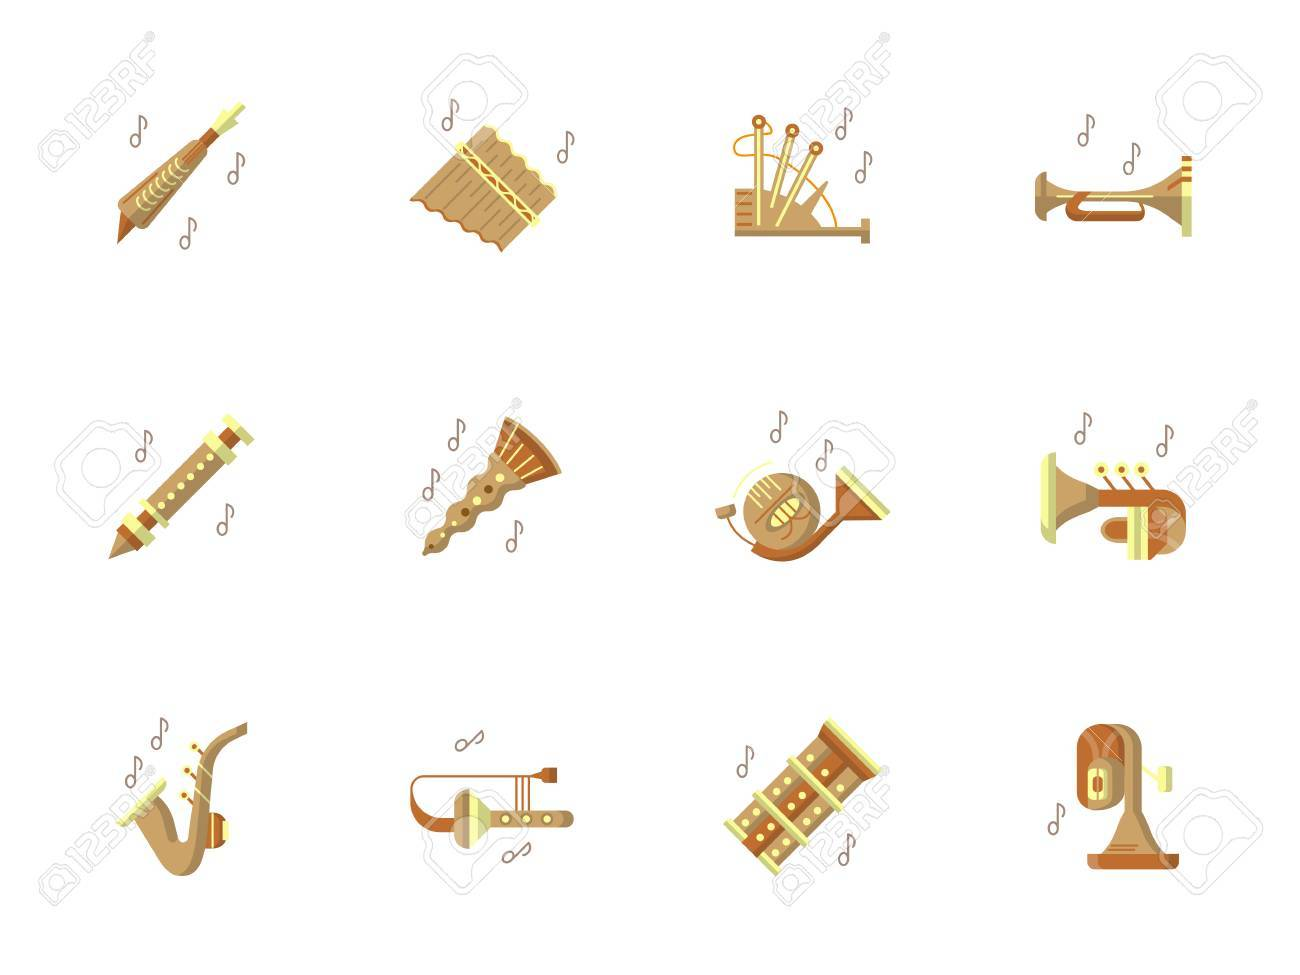 Tunes Of Brass And Woodwind Musical Instruments Classical Ethnic Music Jazz Pop